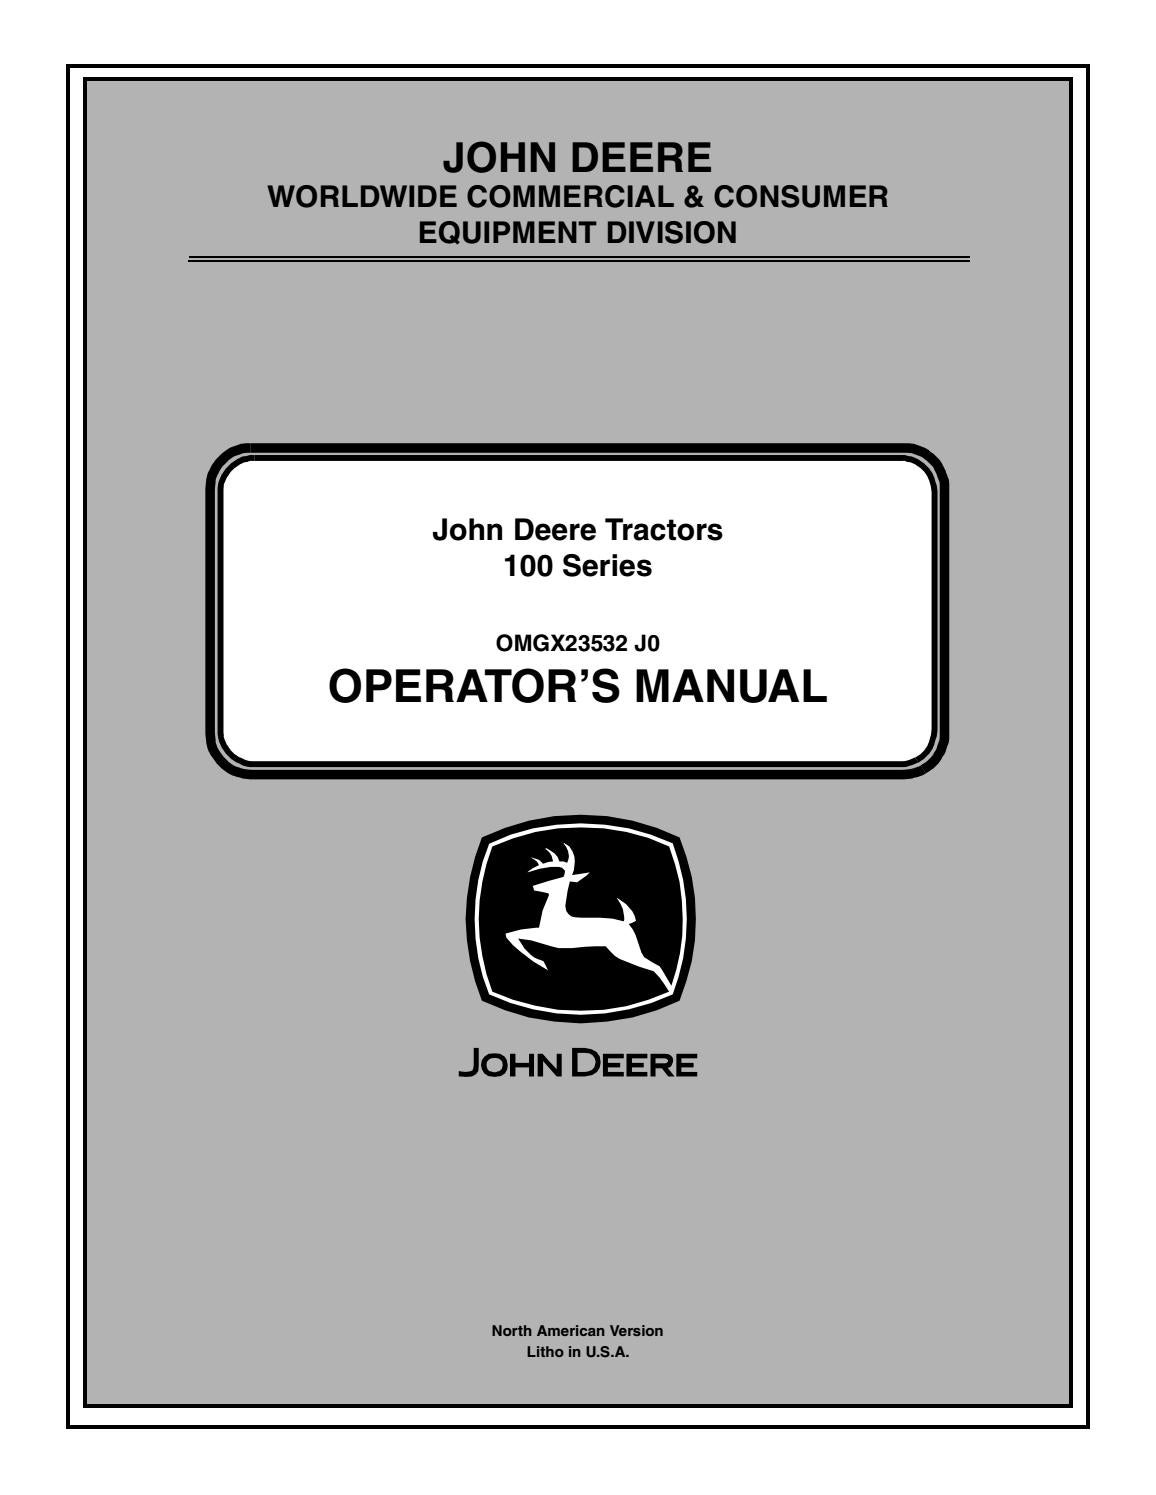 John Deere 100 Manual By Razvan Alexa Issuu A Batteriesand Wiring Harness